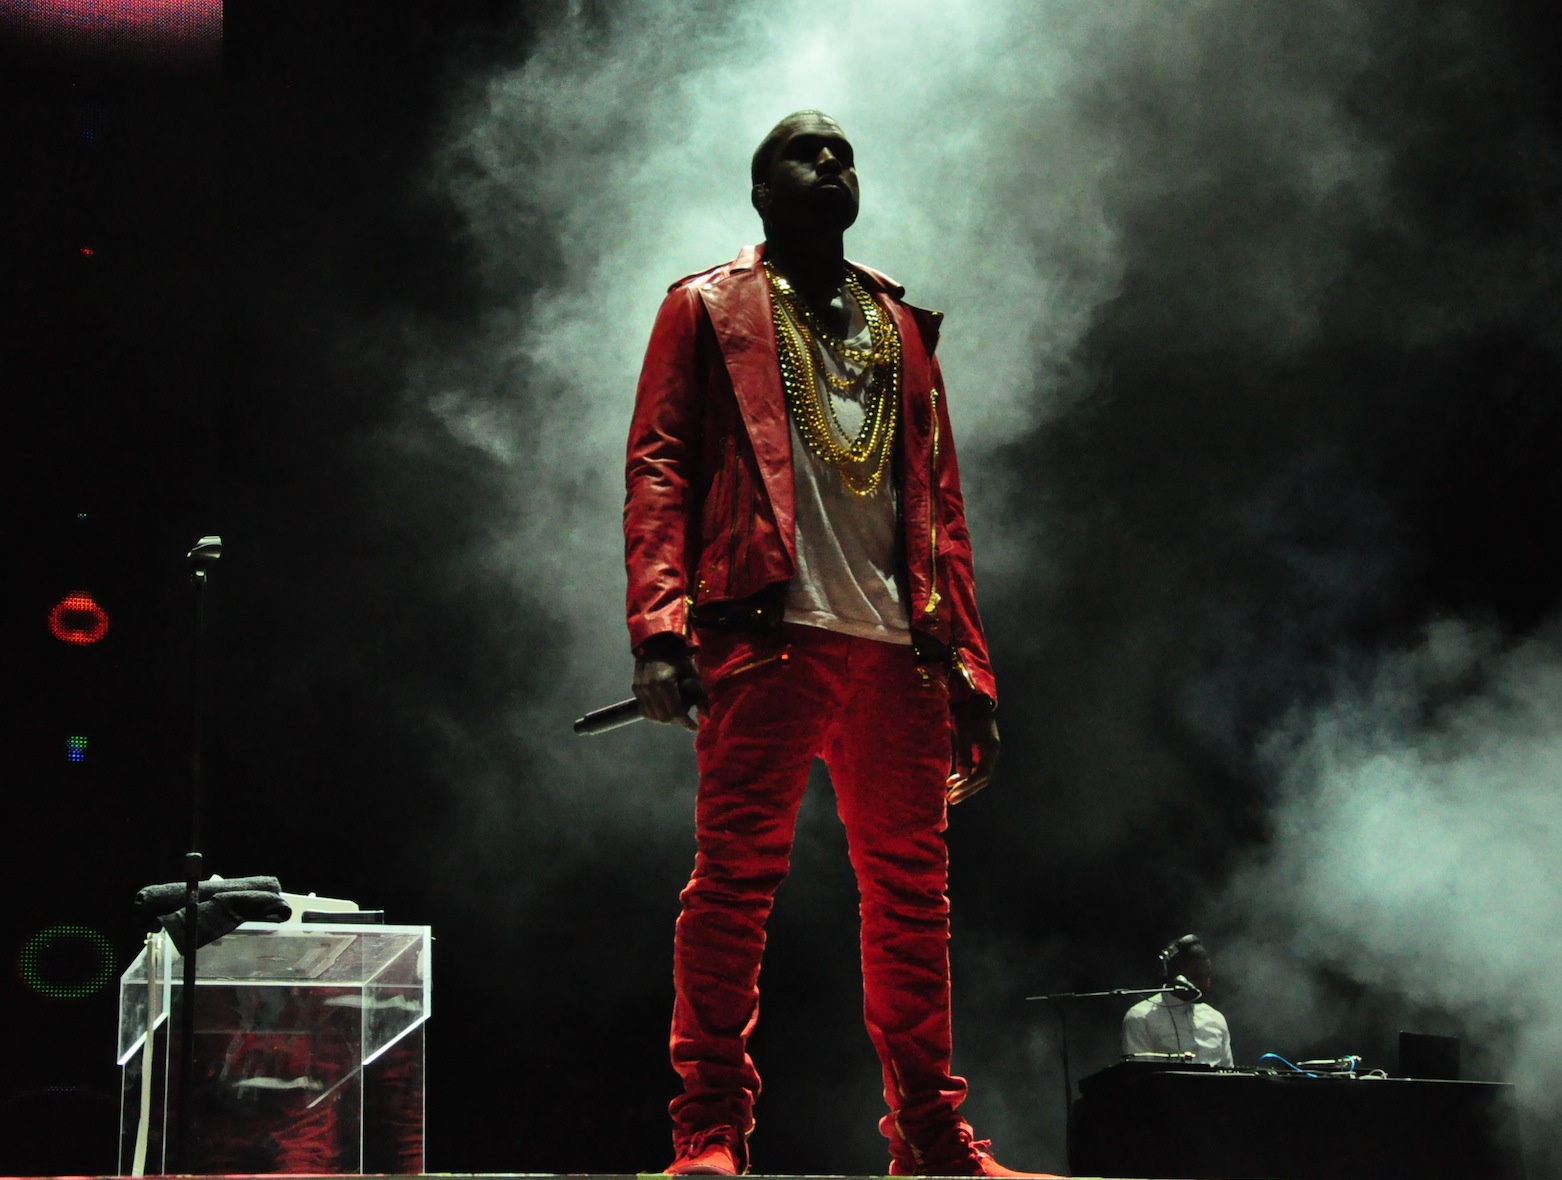 Kanye West at Lollapalooza Chile in 2011. Photo courtesy of Wikipedia.